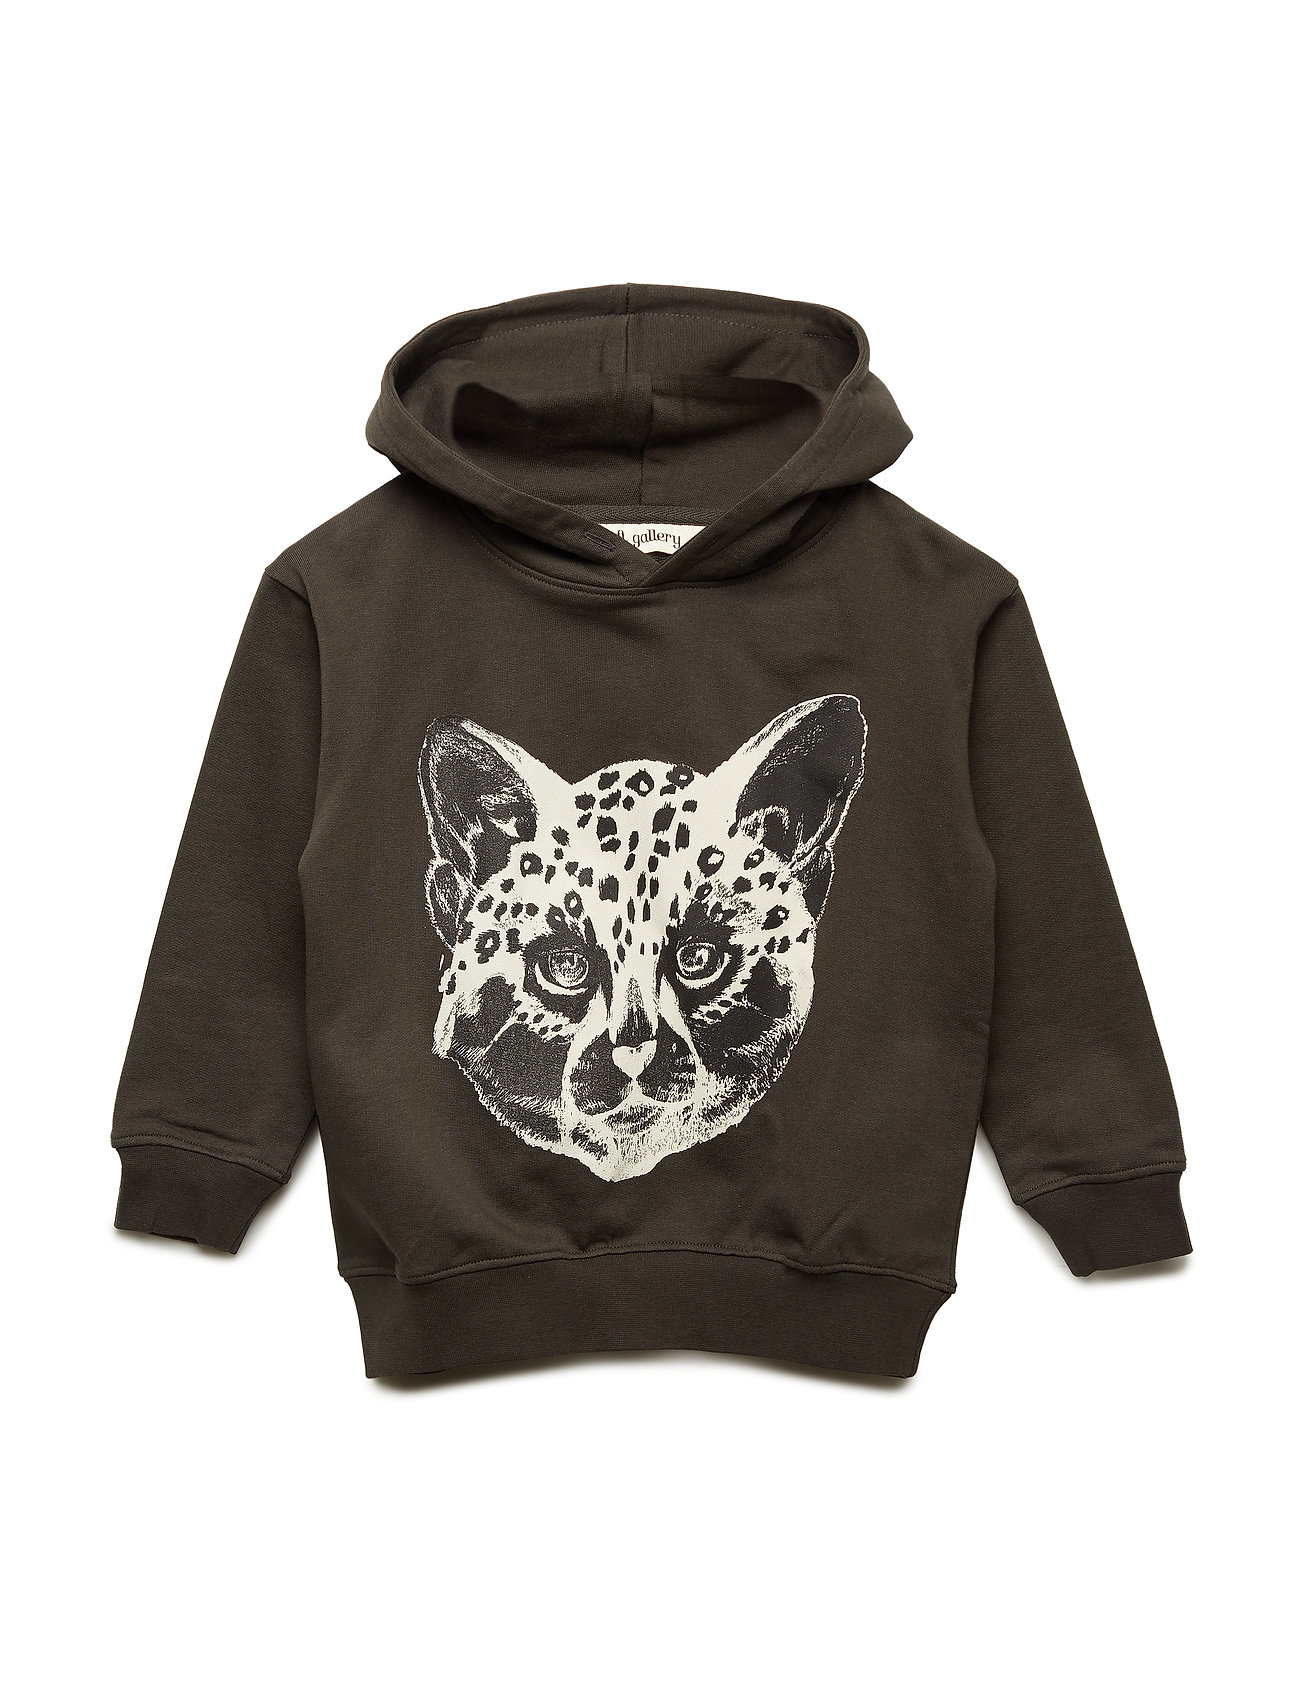 Soft Gallery Bowie Hoodie - PEAT, FUTURECAT